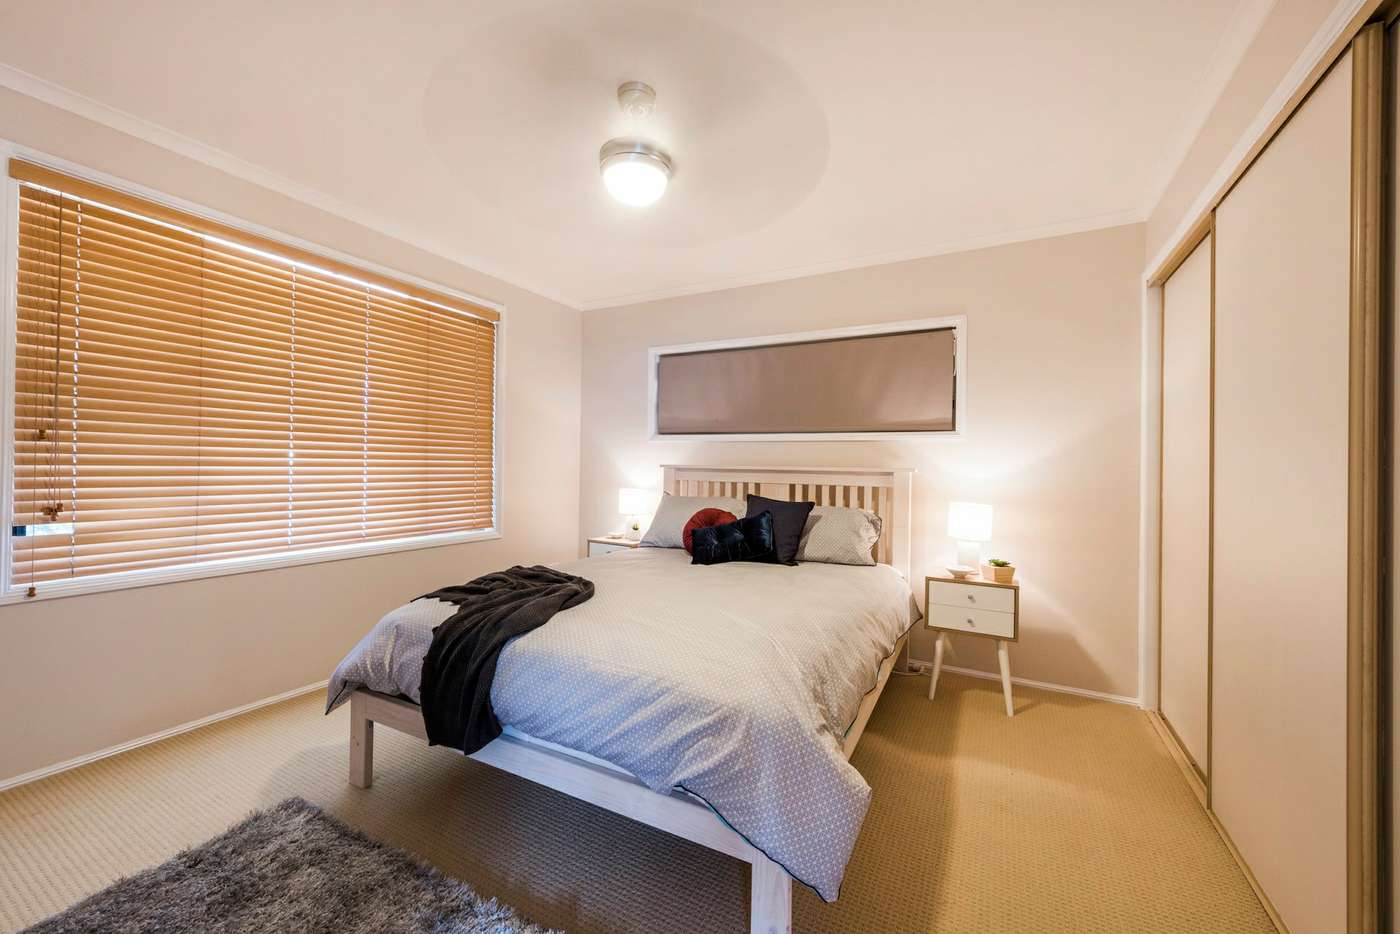 Sixth view of Homely house listing, 31 Melville Street, Iluka NSW 2466